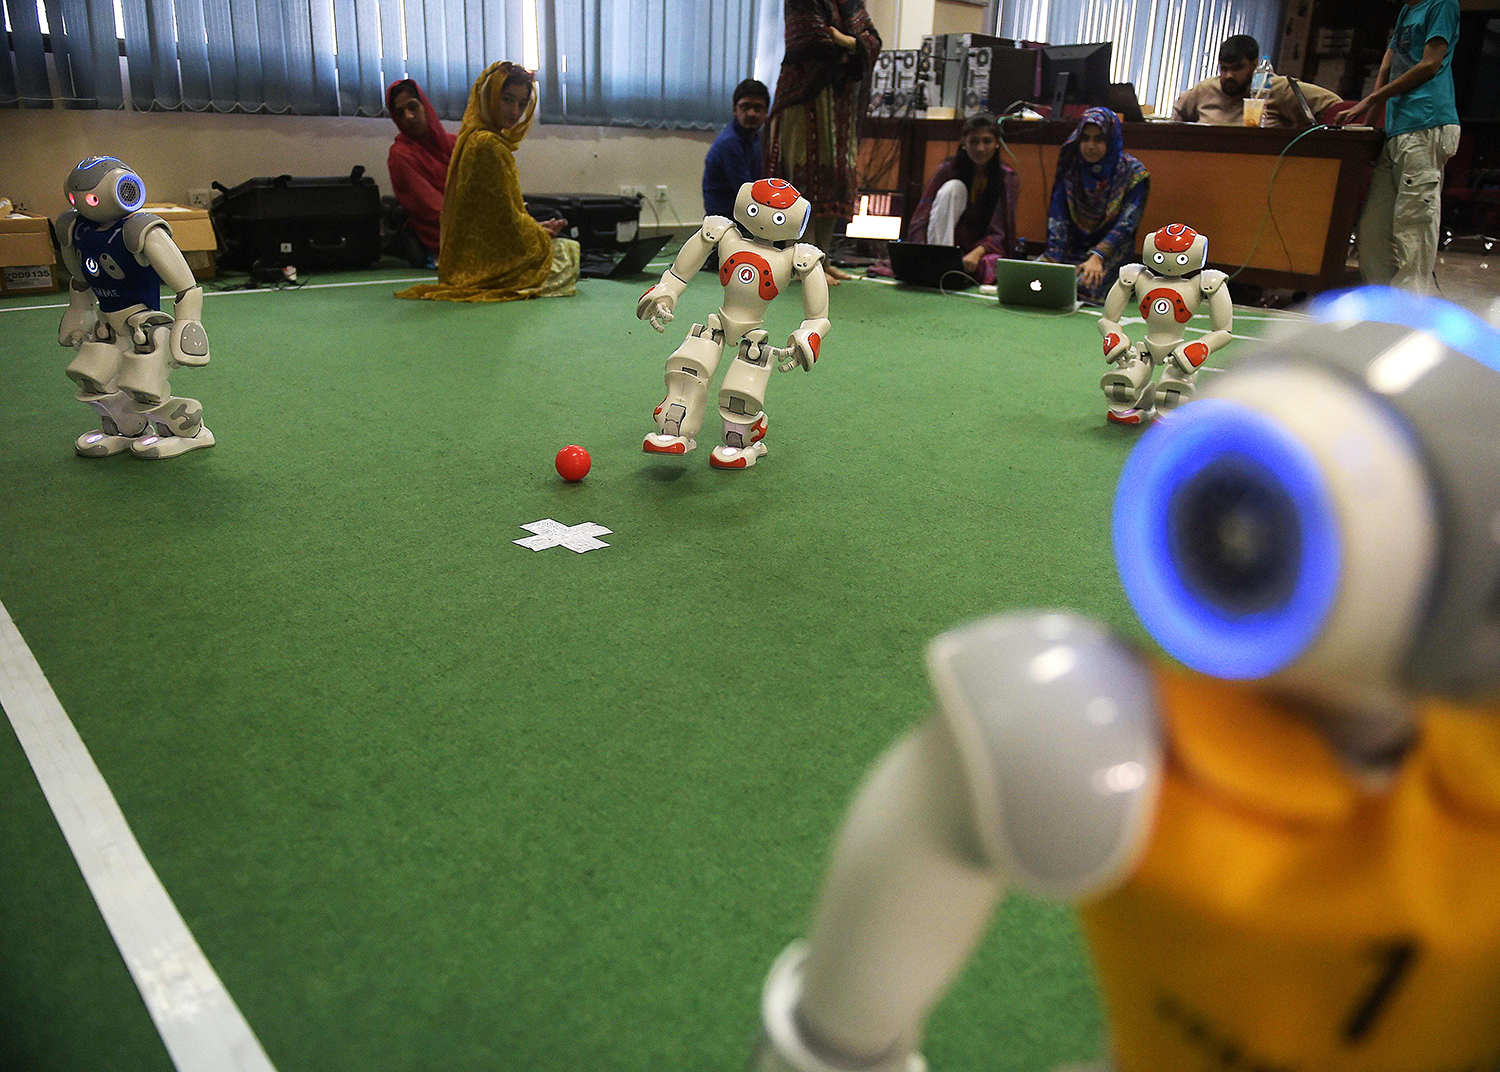 Students and team members of Robotics and Intelligence Systems Engineering (RISE) watch as their robot football players take part in a match. — AFP